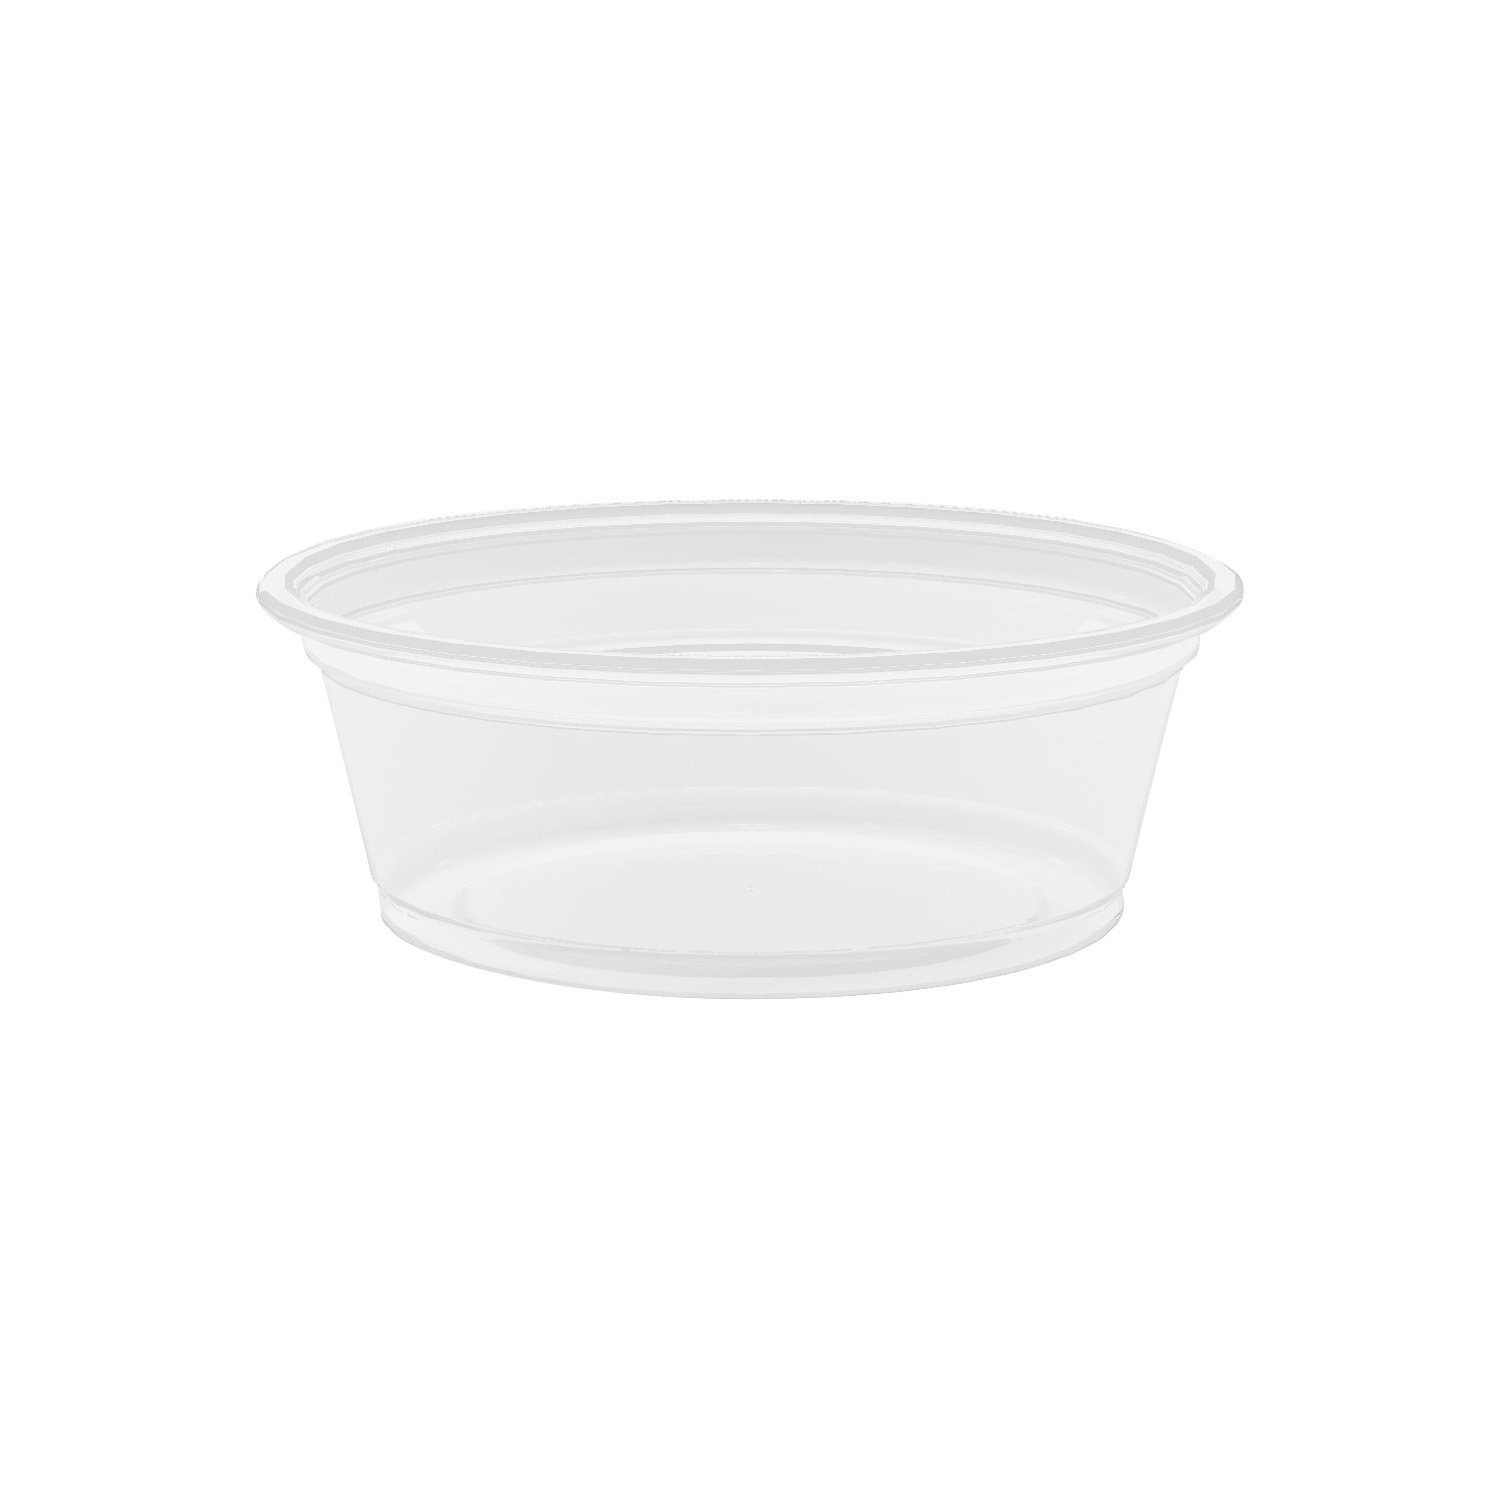 Dart 150PC 1 .5 oz Clear PP Portion Container (Case of 2500) by DART